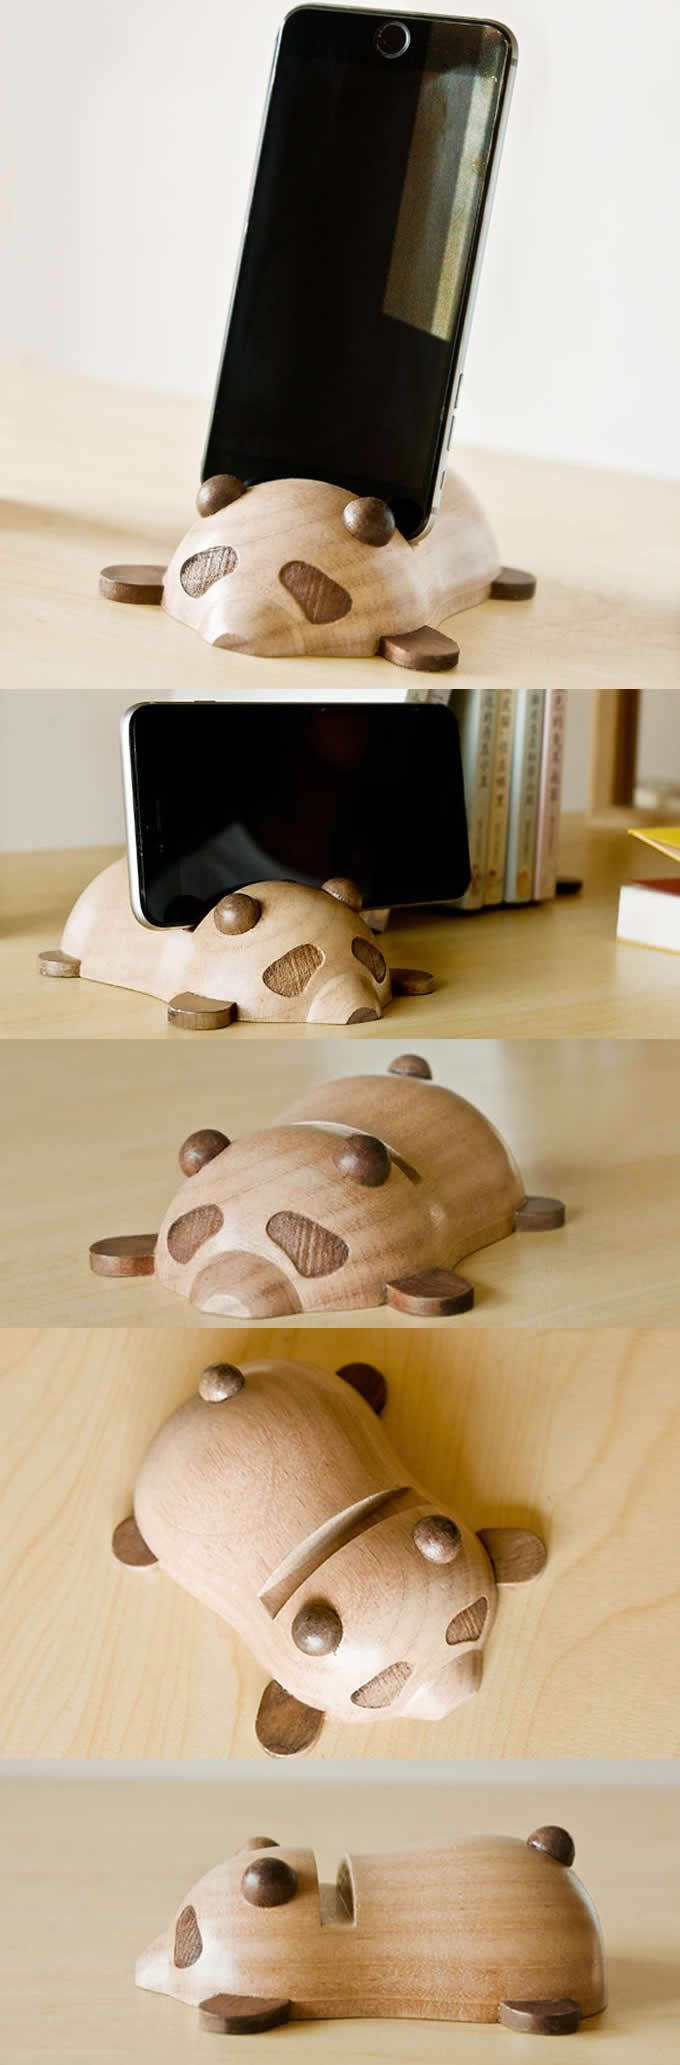 Wooden Panda IPhone IPad Mobile Phone Stand Holder Mount Business Cards  Holder To Organizer Your Office